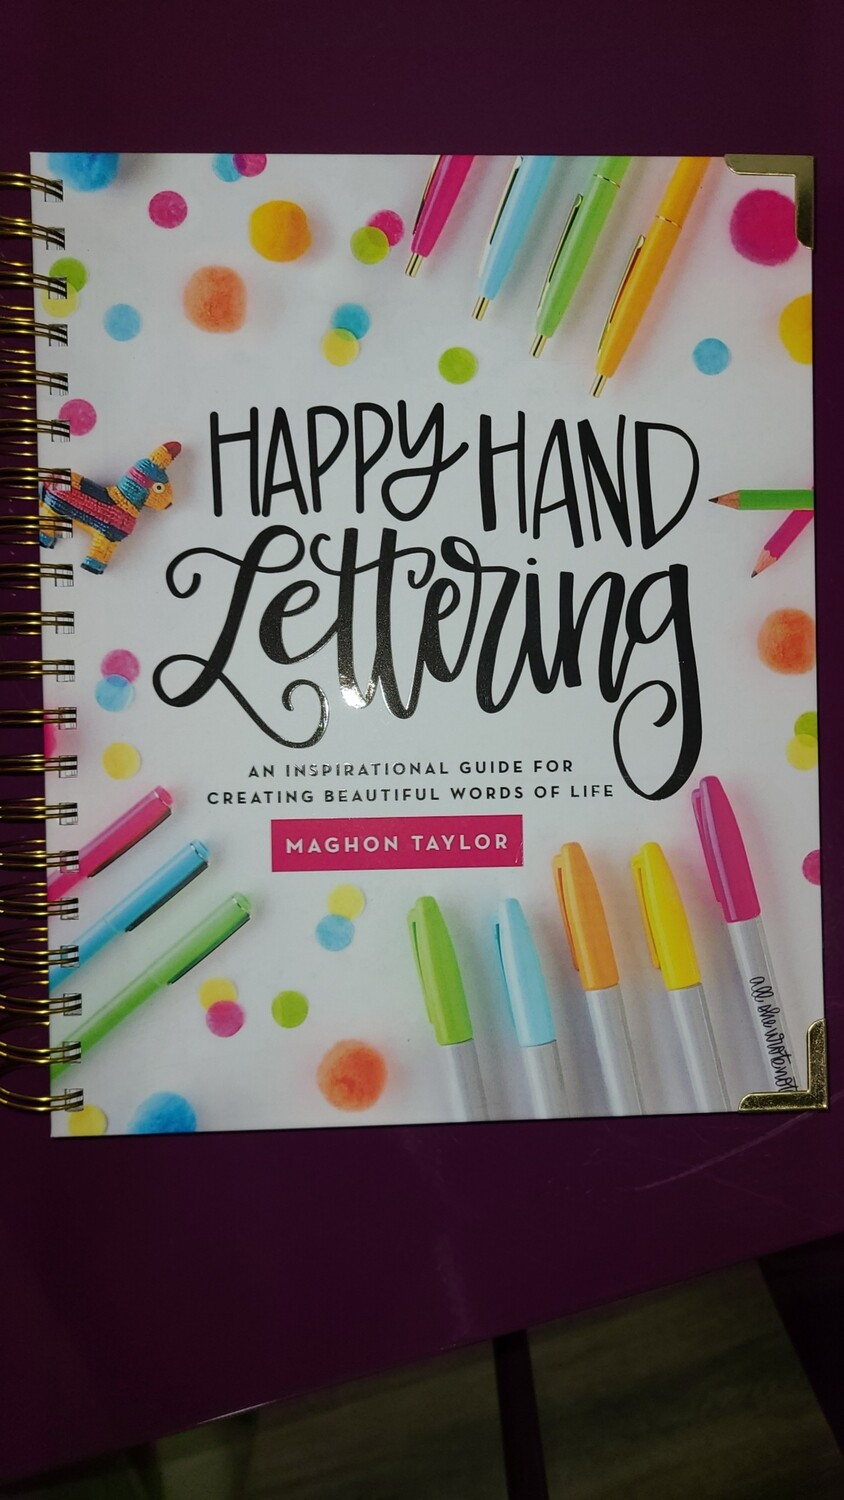 Journal, Happy Hand Lettering (Maghon Taylor)